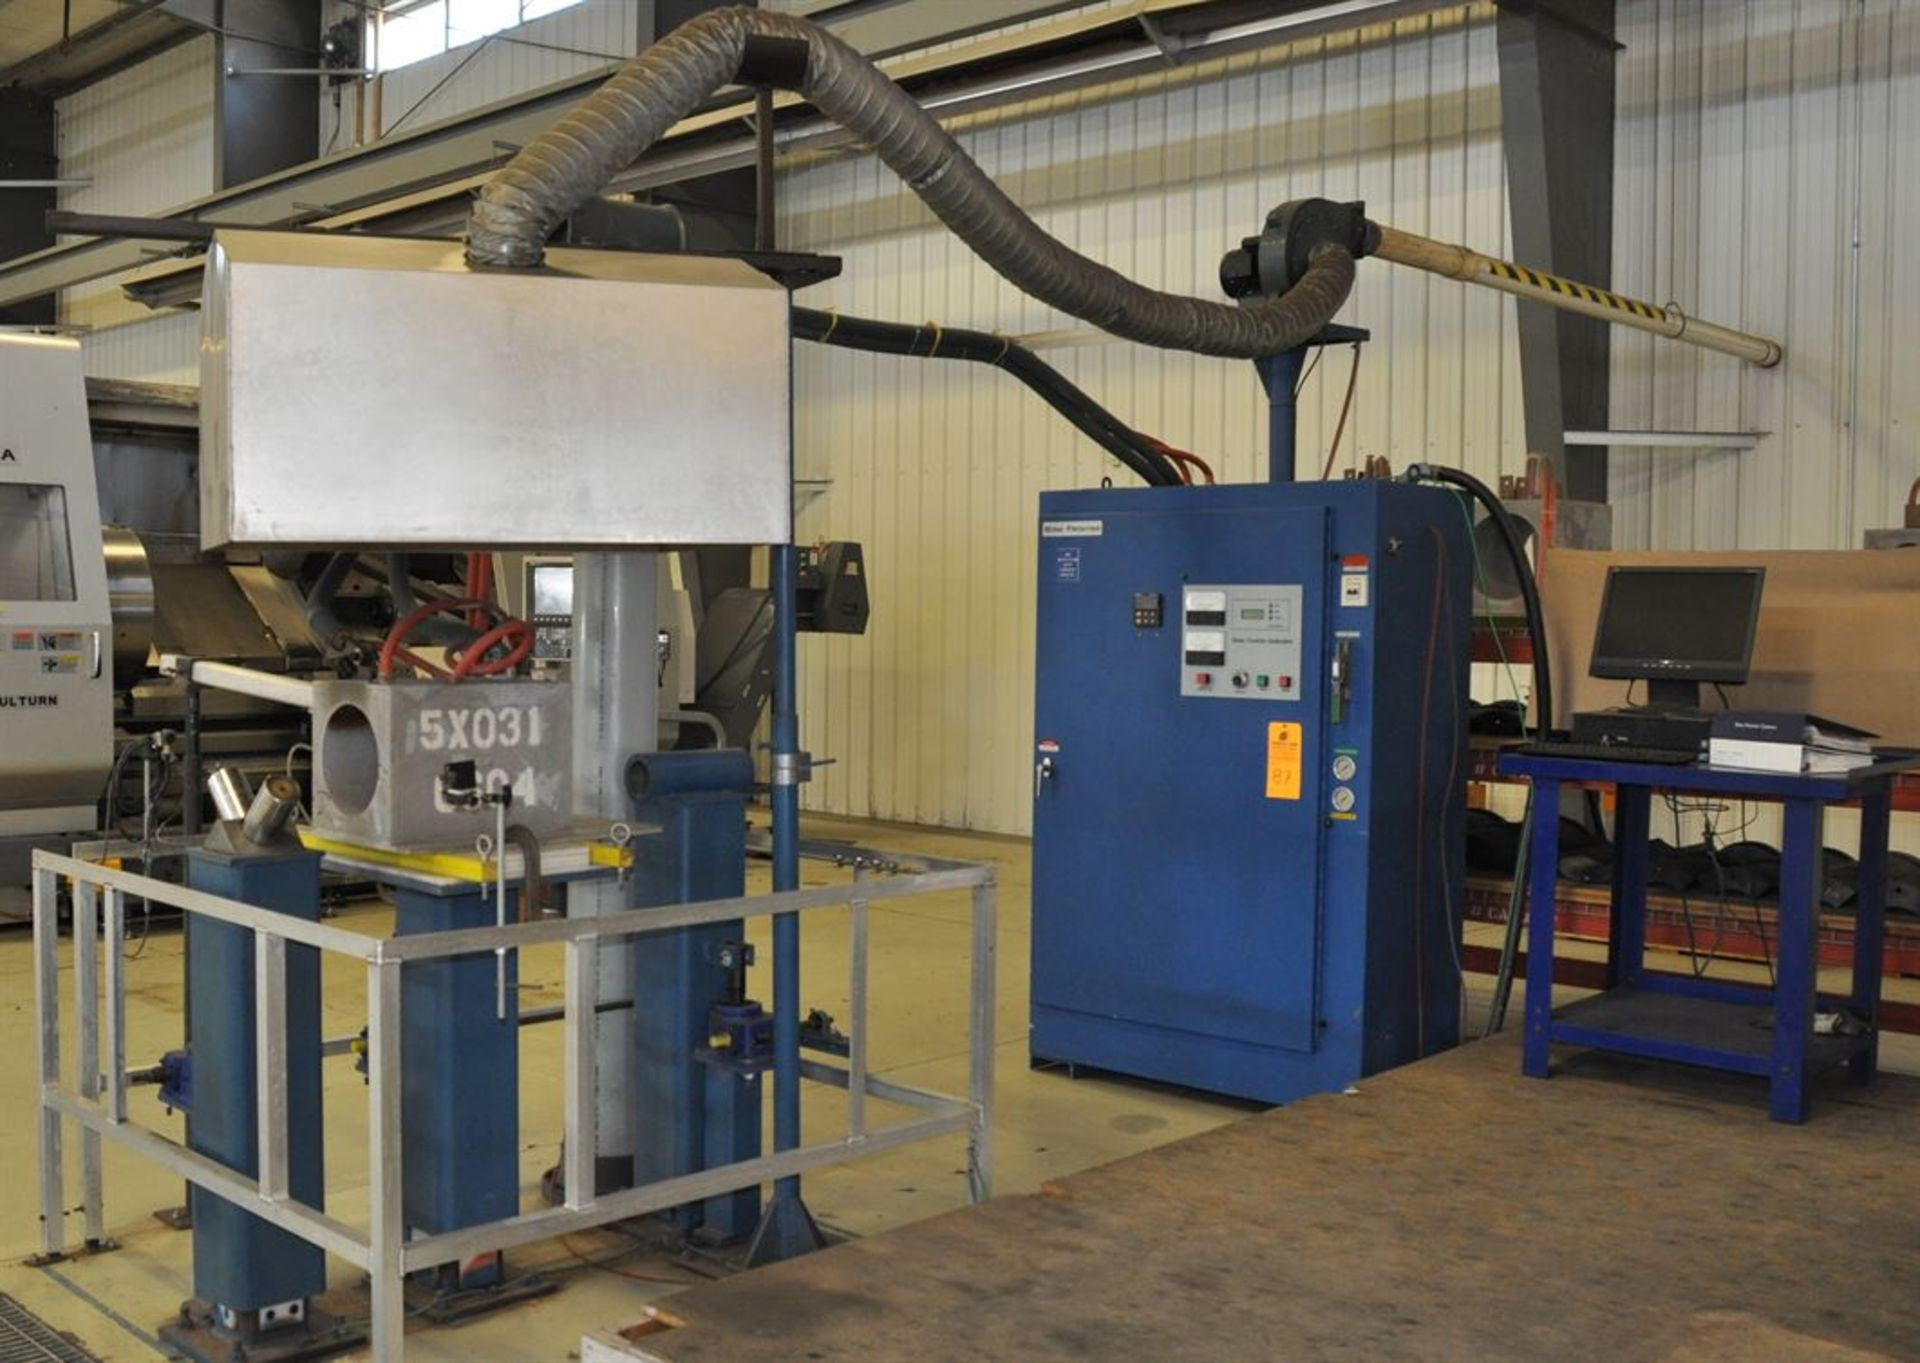 2012 BONE FRONTIER COMPANY CNC TS5L 75 3-10SUM Induction Power Stress Relieving Unit, s/n 730, w/